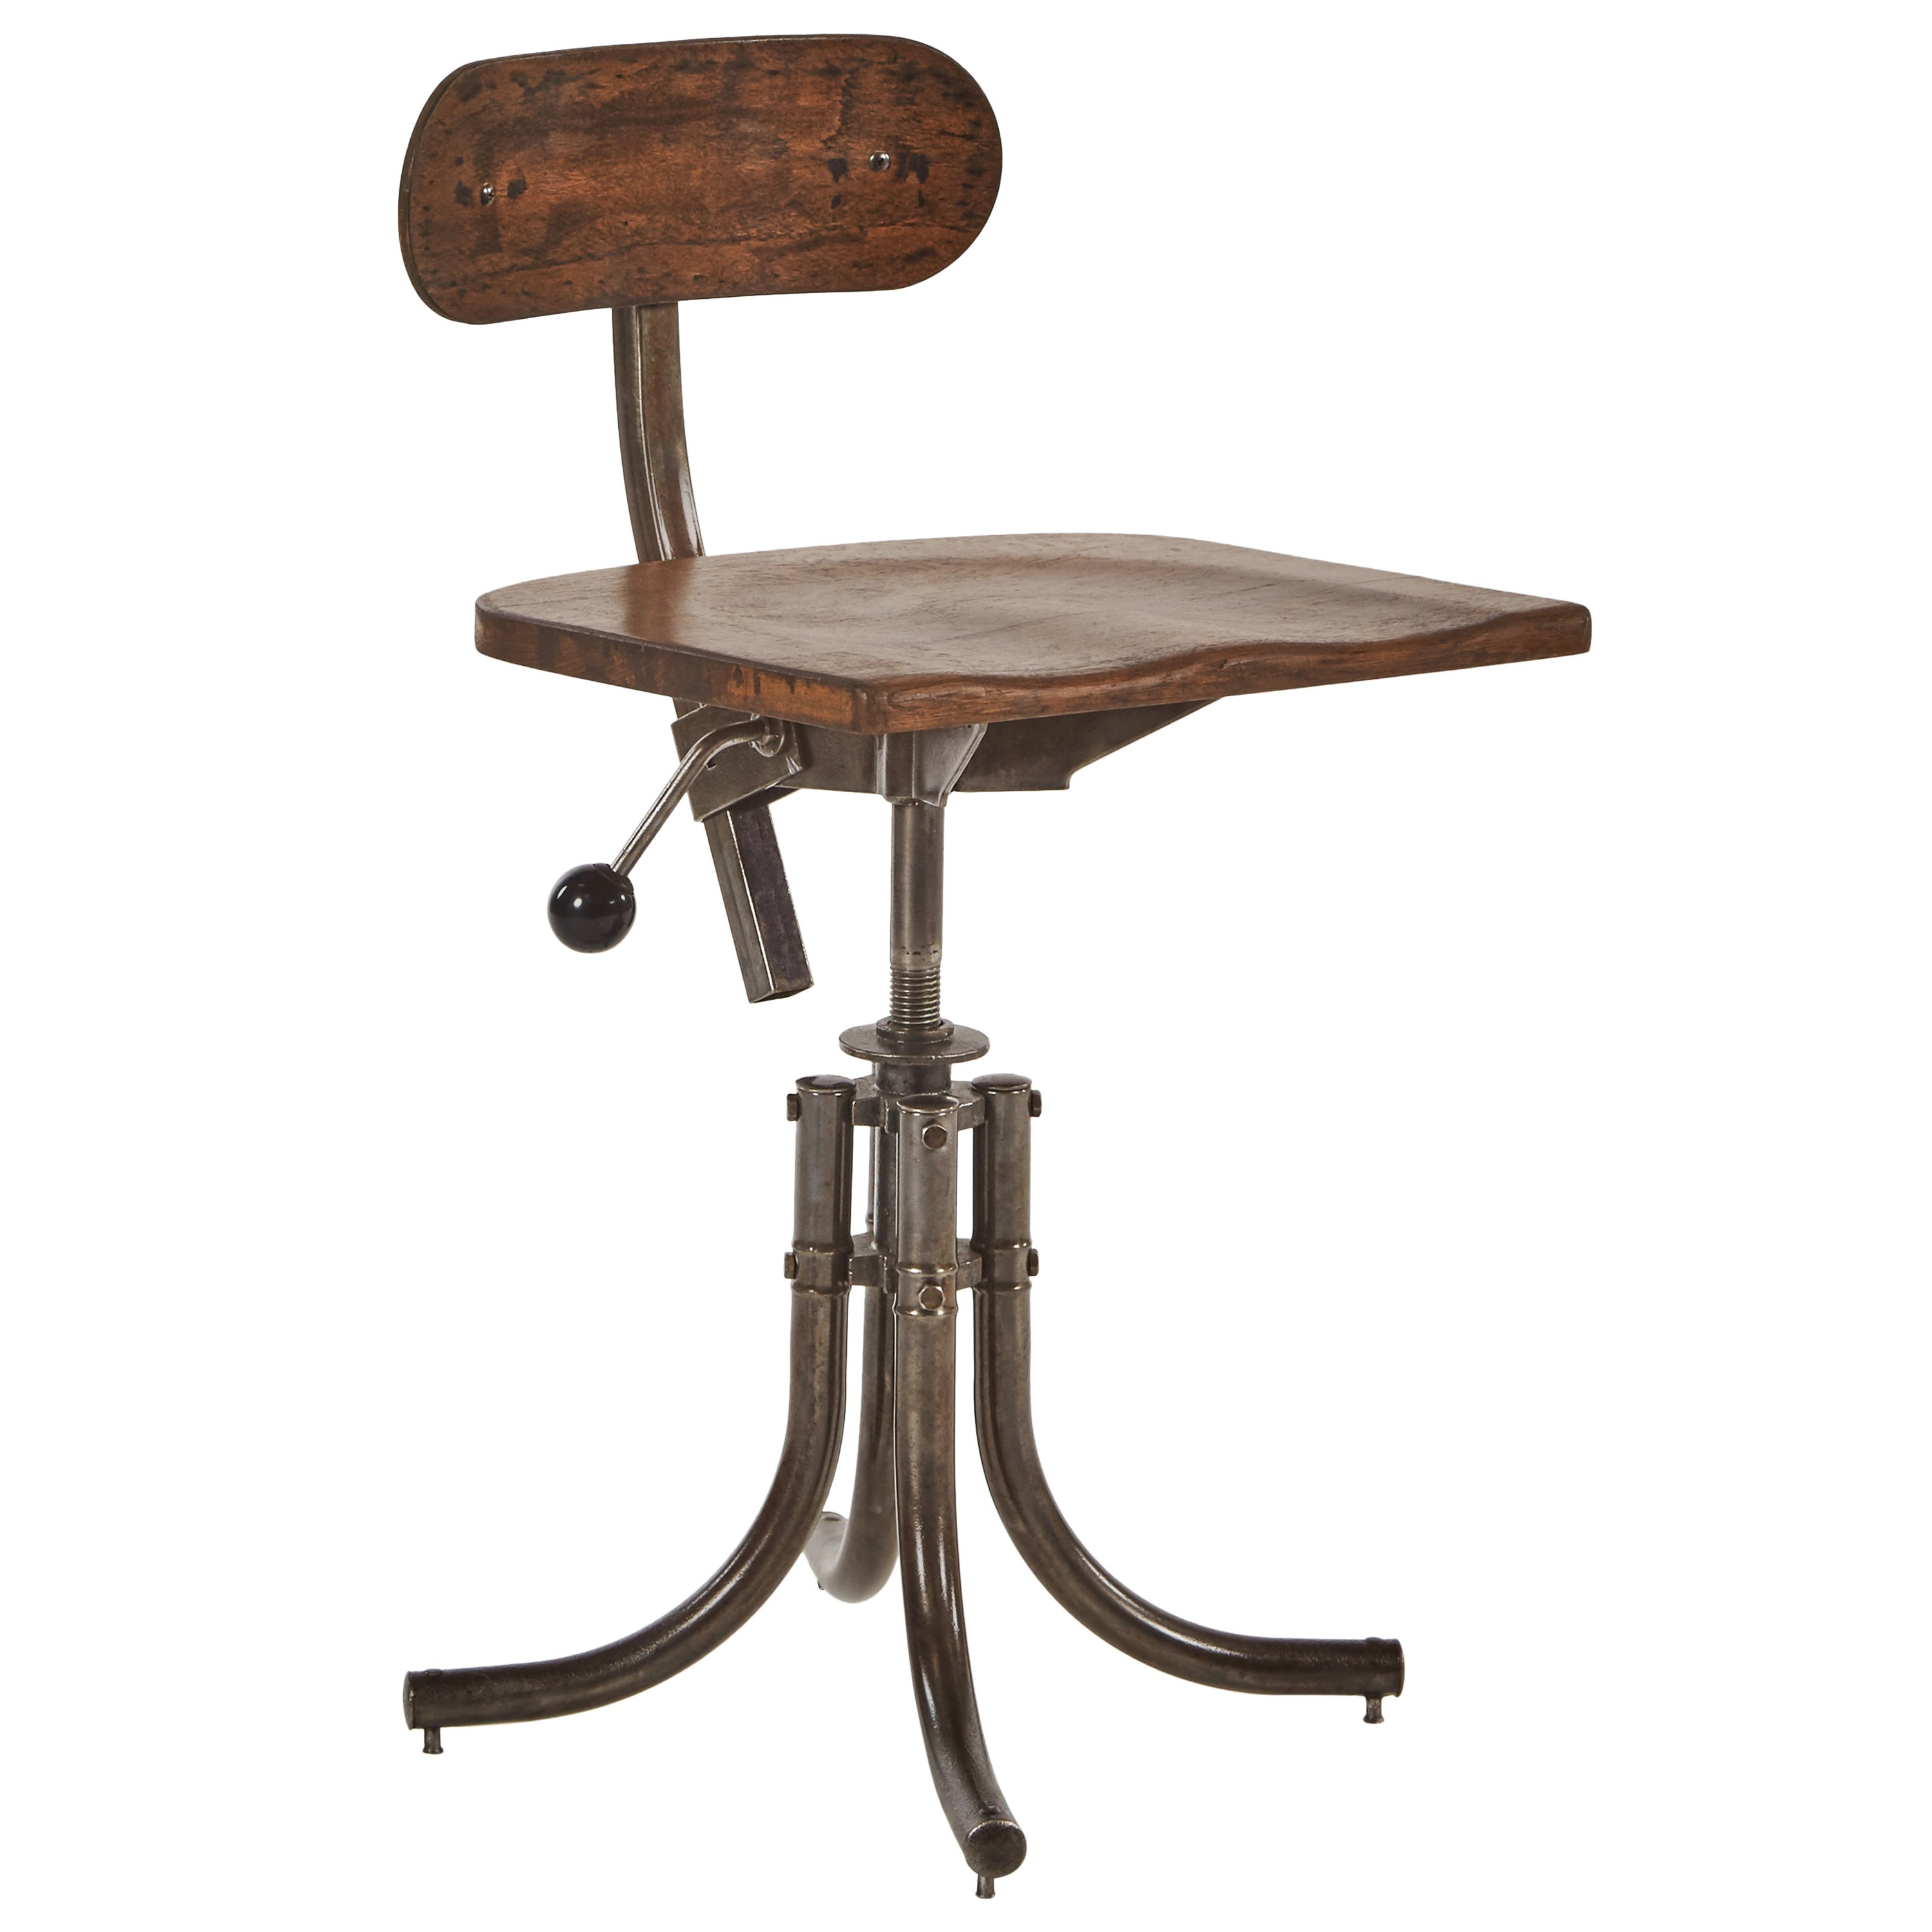 Antiques Vintage Antique Industrial Ajustrite Metal Stool With Curved Wooden Seat Benches & Stools